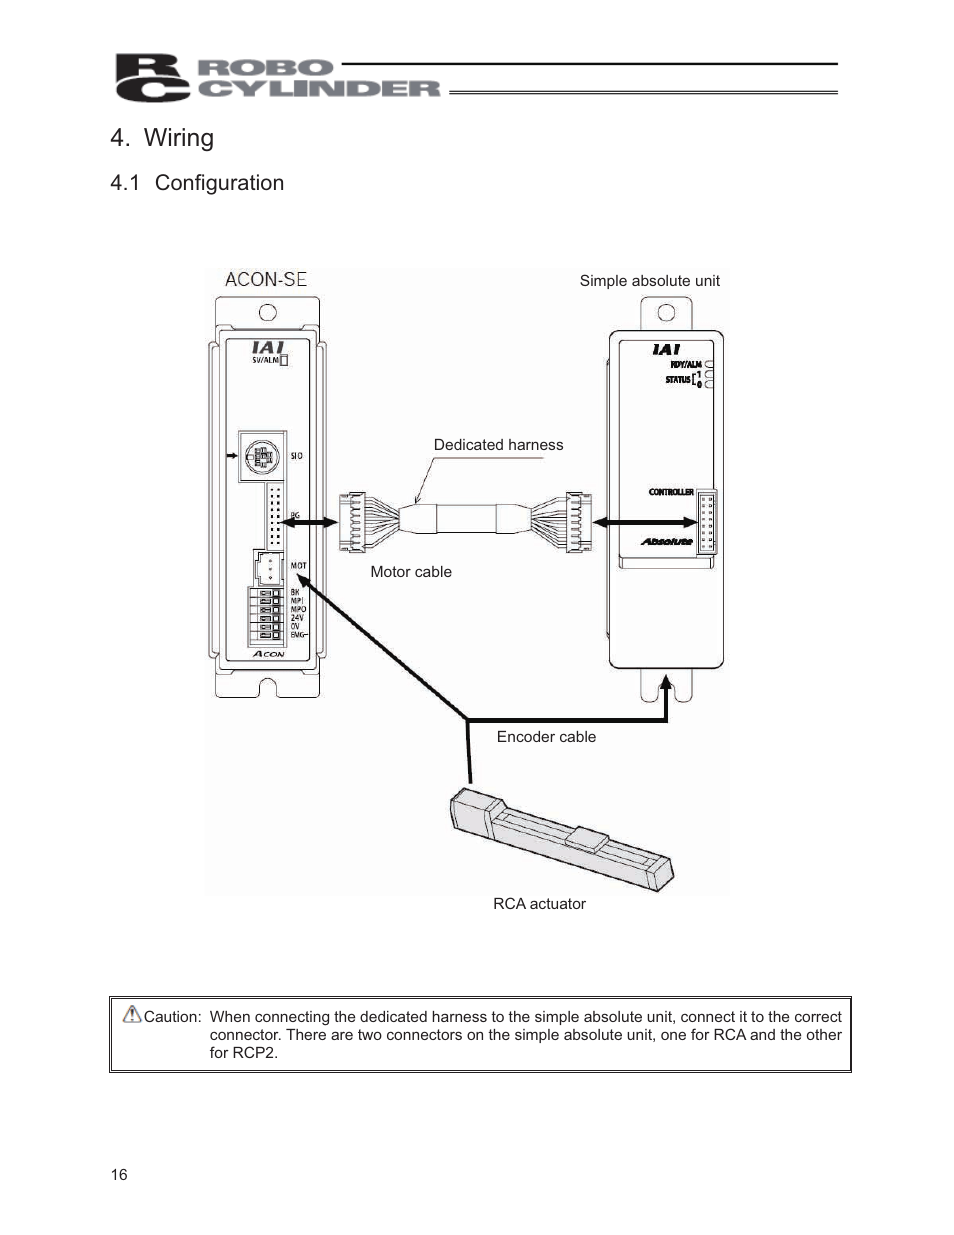 hight resolution of wiring 1 configuration iai america pcon abu user manual page 34 60